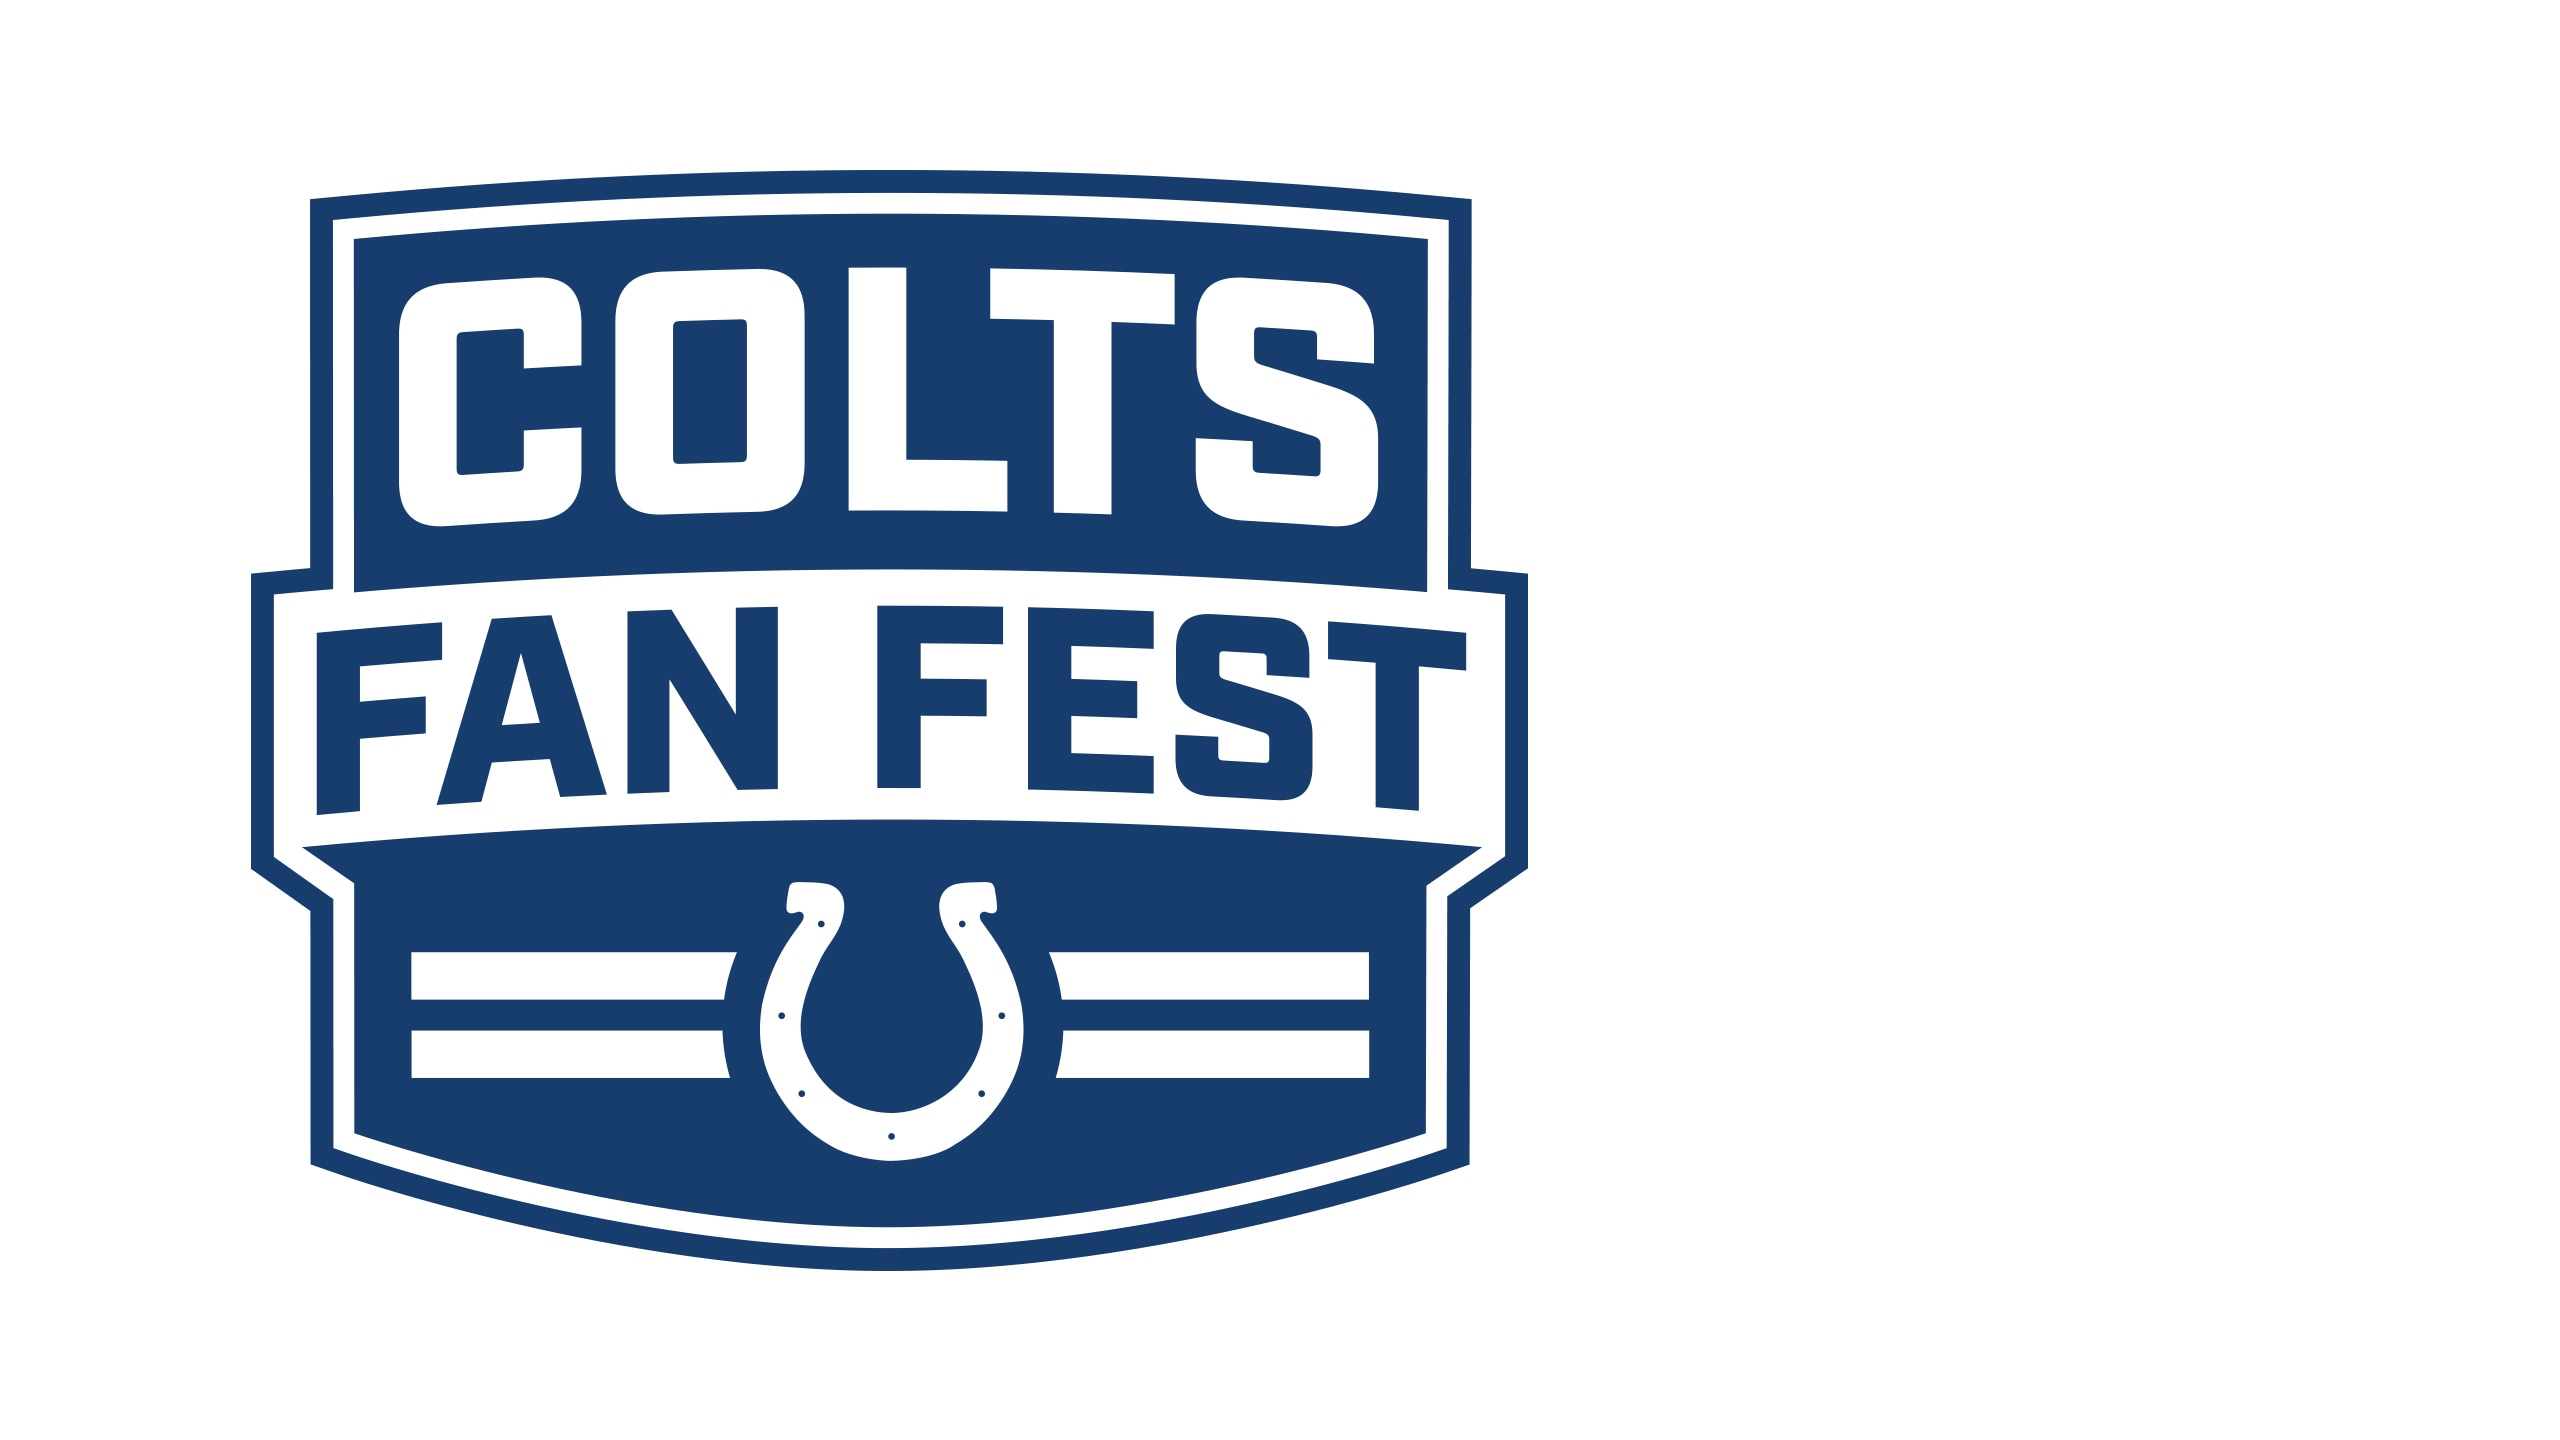 Fan Fest - Wednesday, May 22 at 5:00-7:00 PM in Bedford, IN, Players: DT Denico Autry & G Quenton Nelson,  Location: Harp Commons